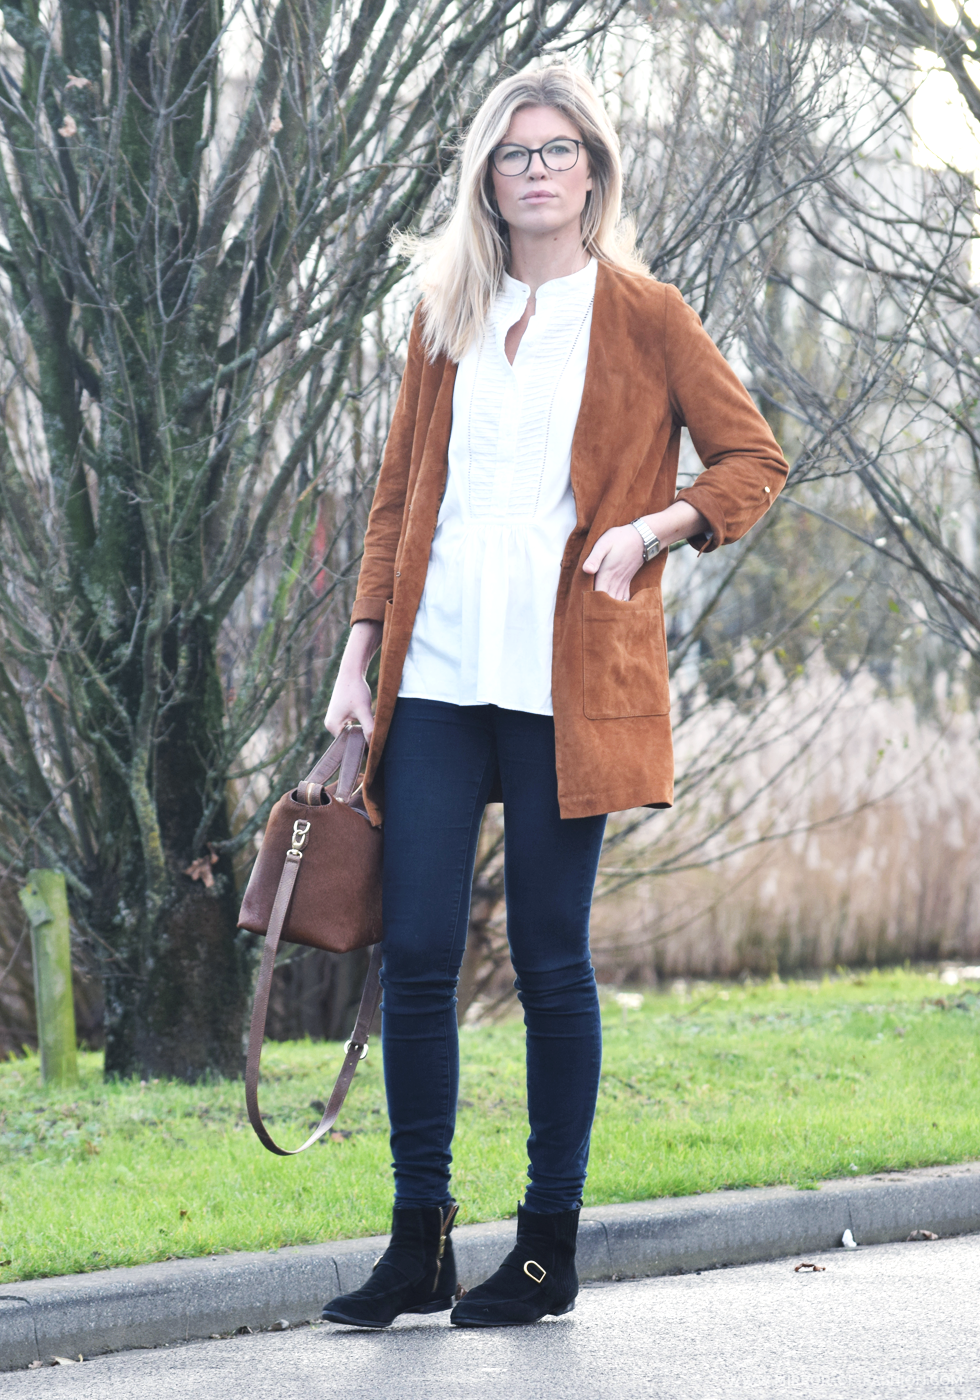 Chanel, Esprit, Vanessa Bruno Athé, La Pomme de Loveley, Jbrand, isabel marant, Outfit of the day, suede